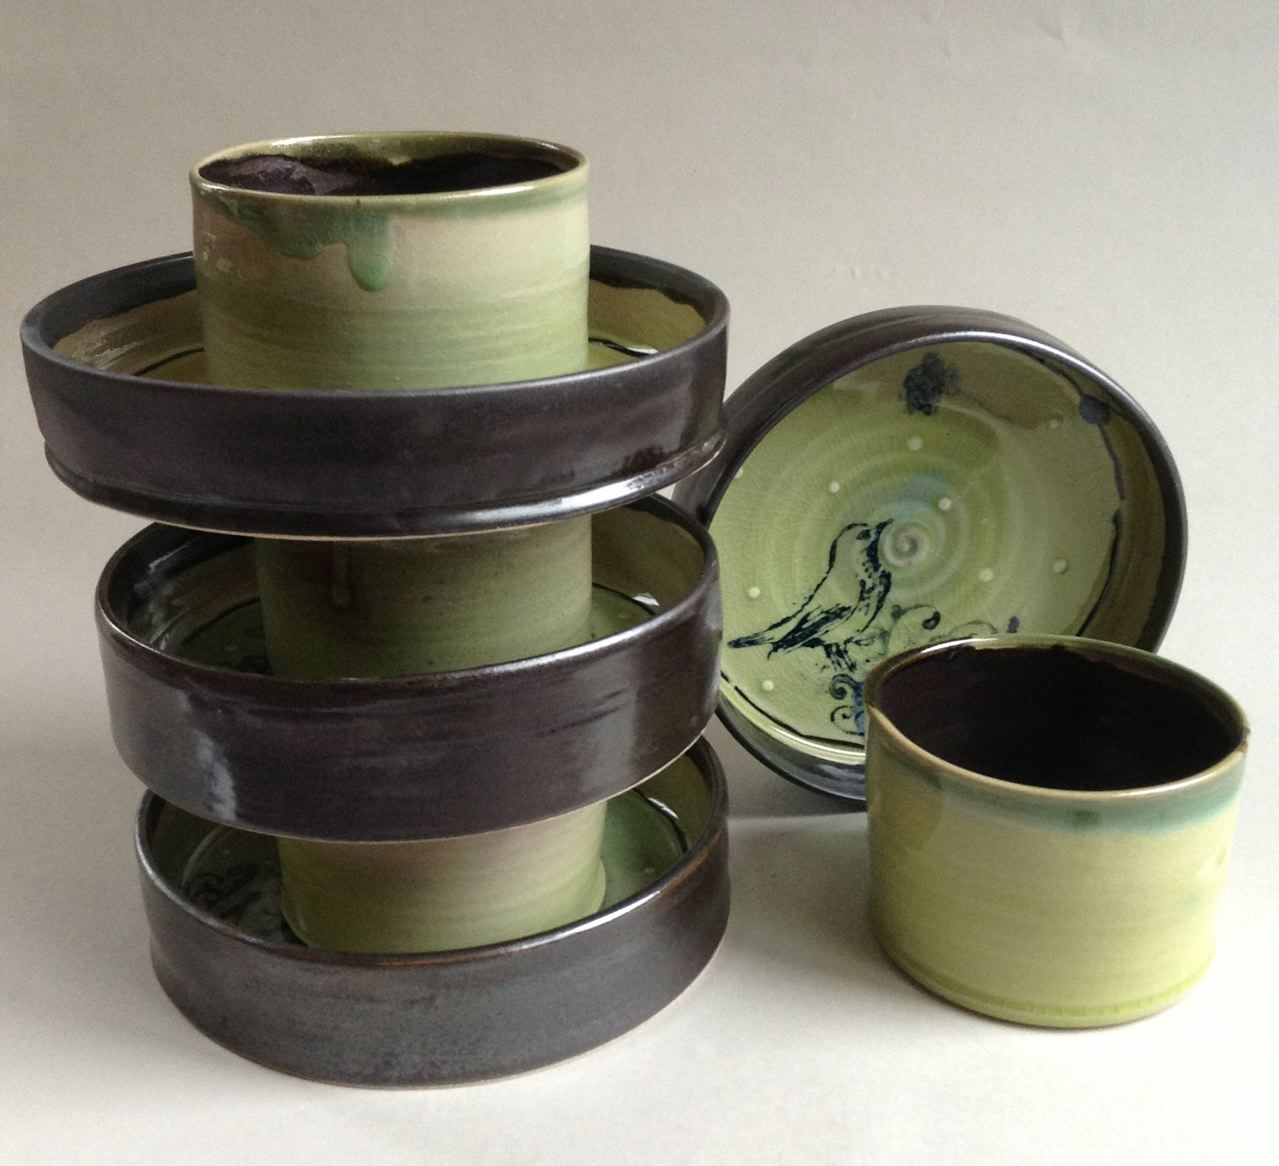 pottery cups and bowls